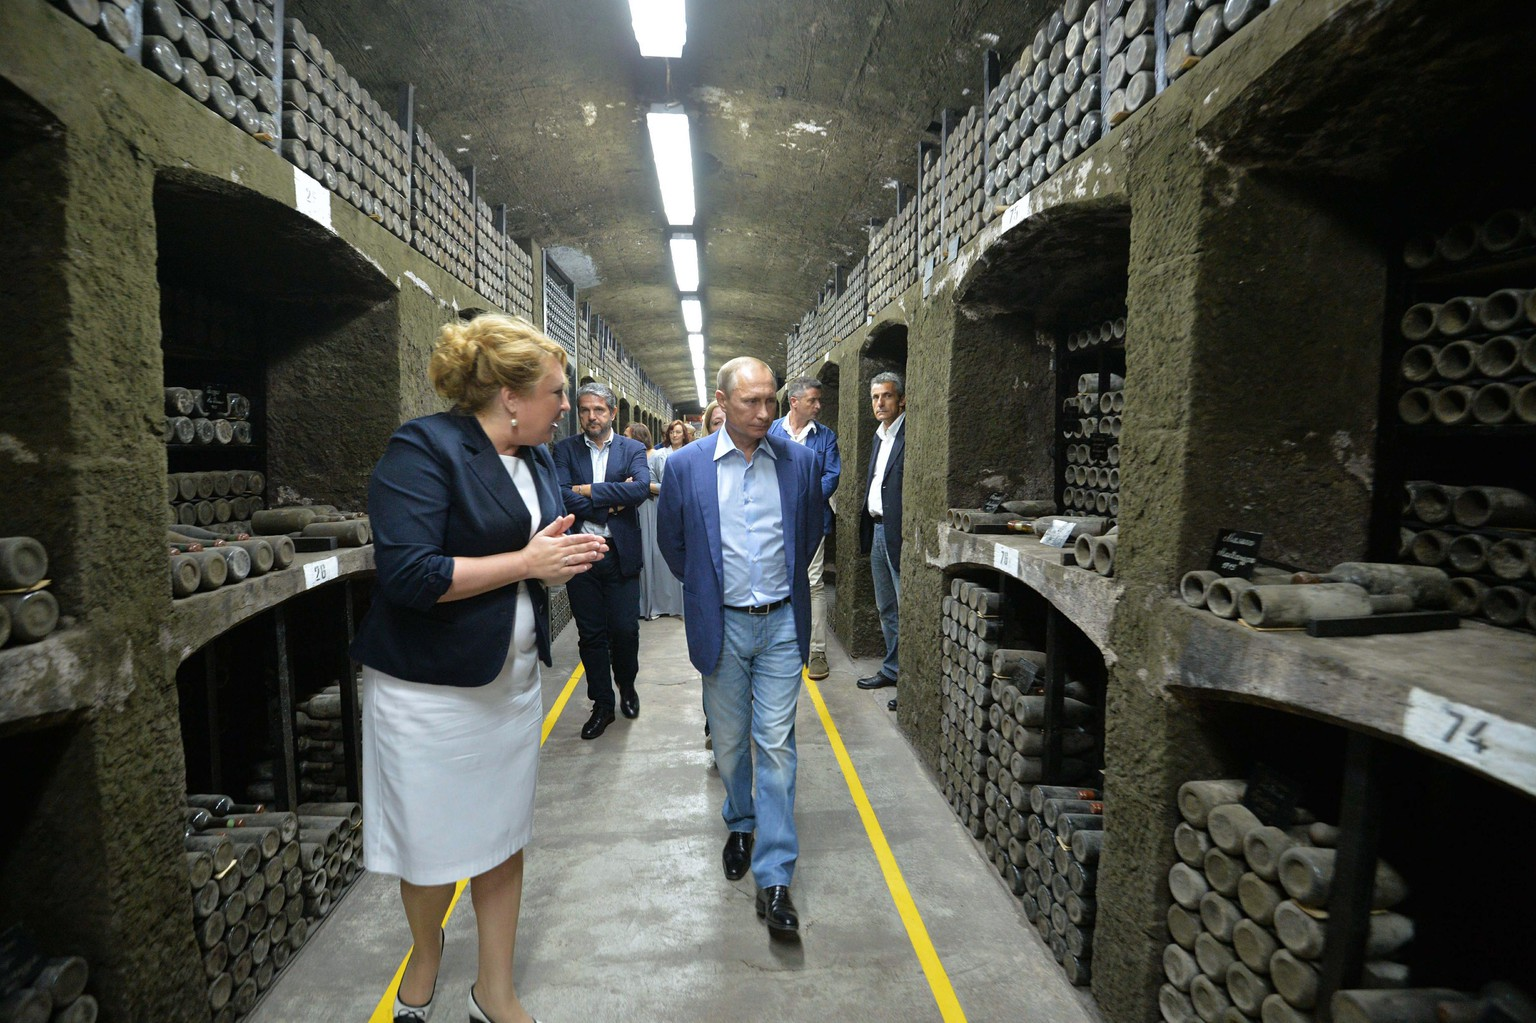 epa04925866 Russia's President Vladimir Putin (C) and Italy's former Prime Minister Silvio Berlusconi (unseen) examines wine depository of Massandra winery in Yalta, Crimea, 11 September 2015. Silvio Berlusconi is in Russia on a private visit.  EPA/ALEXEI DRUZHININ / RIA NOVOSTI / KREMLIN POOL MANDATORY CREDIT/RIA NOVOSTI